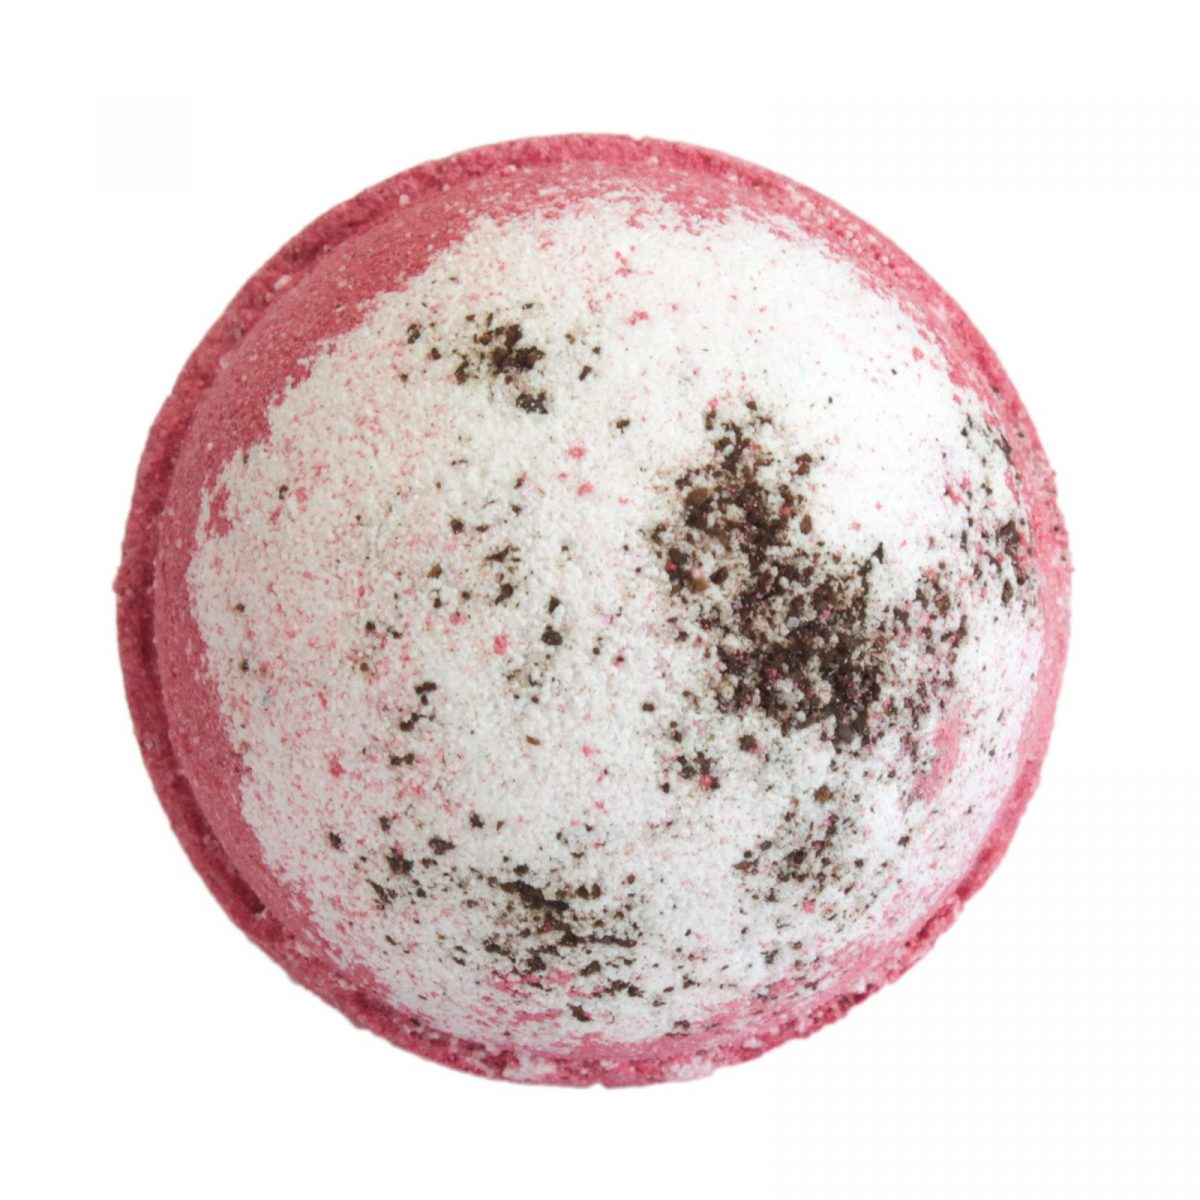 Martini-cocktail-bath-bombs-gifts-for-her